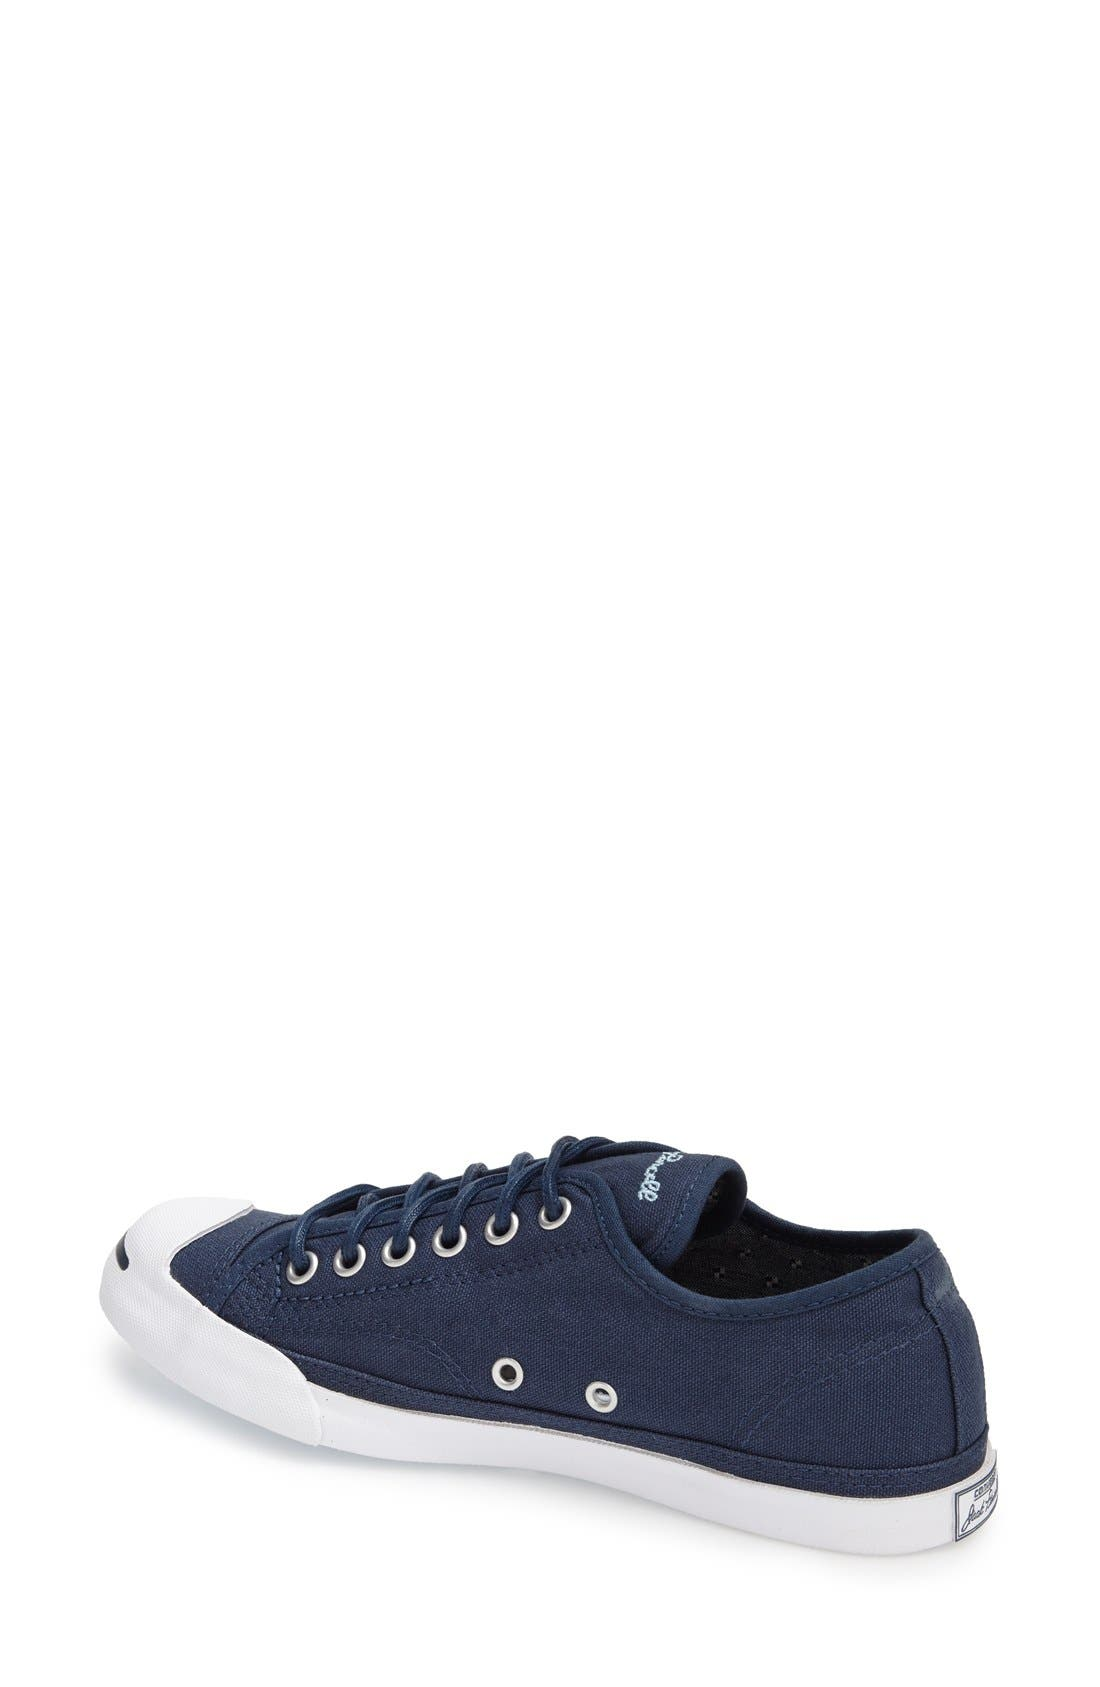 'Jack Purcell' Low Top Slip On Sneaker,                             Alternate thumbnail 8, color,